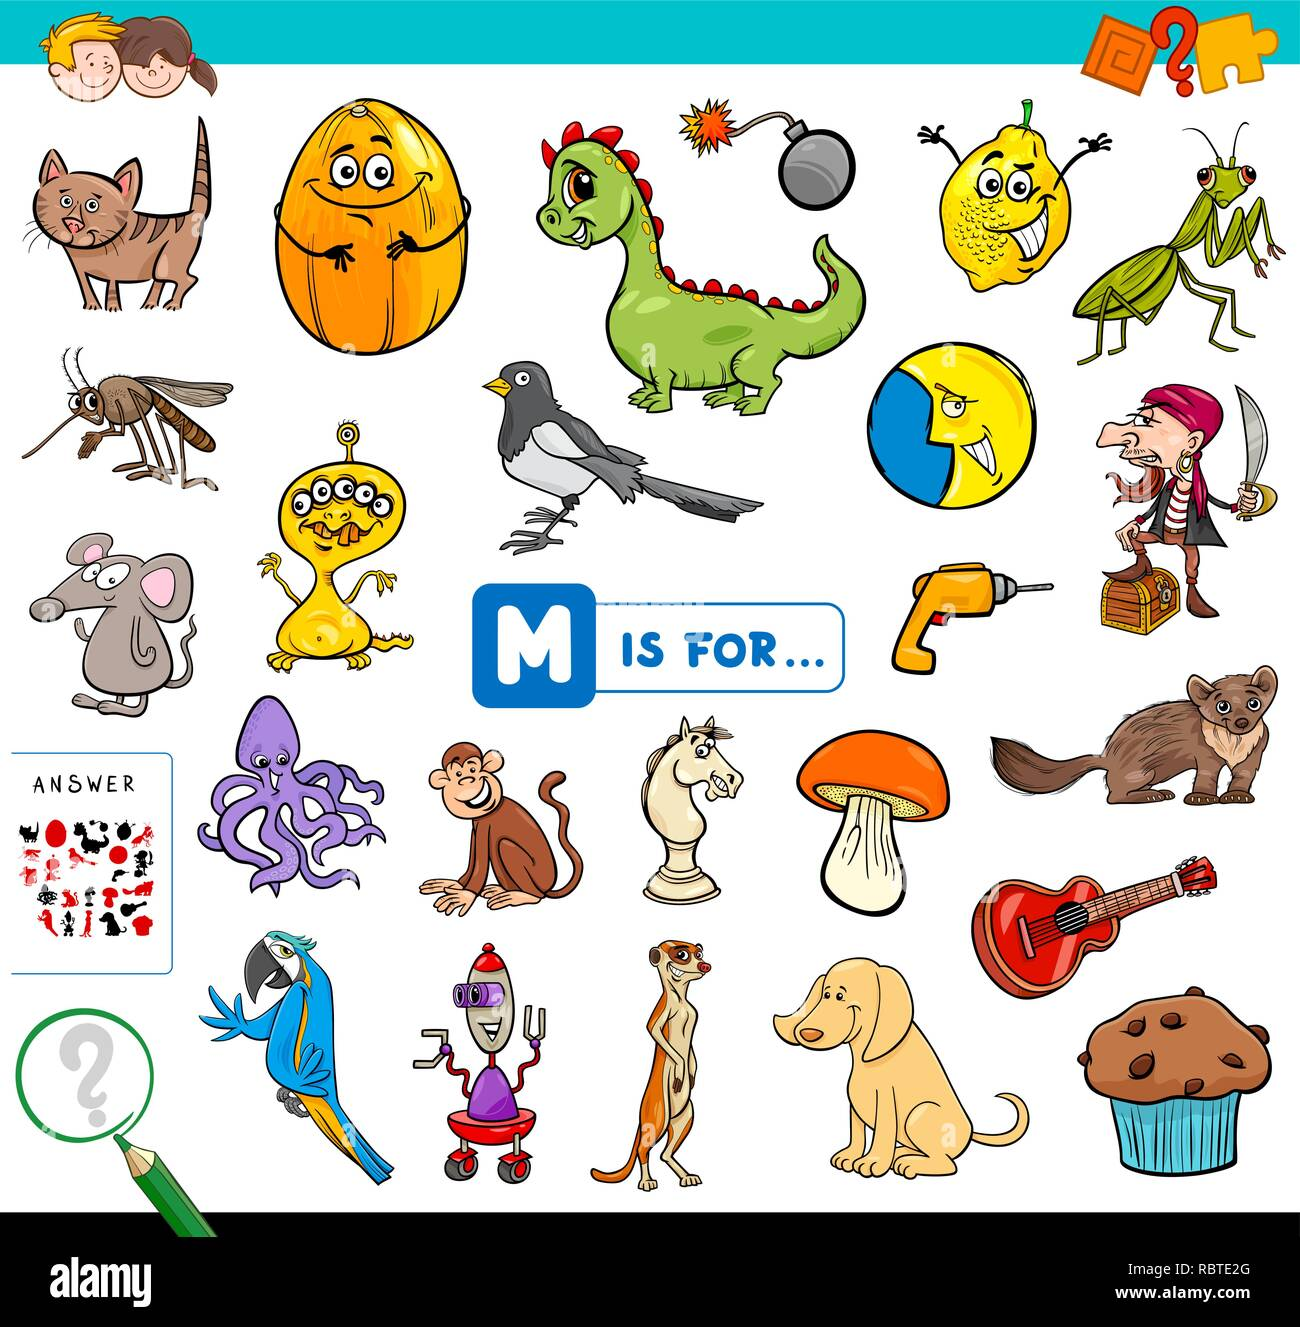 Cartoon Illustration Of Finding Picture Starting With Letter M Educational Game Workbook For Children Stock Vector Image Art Alamy